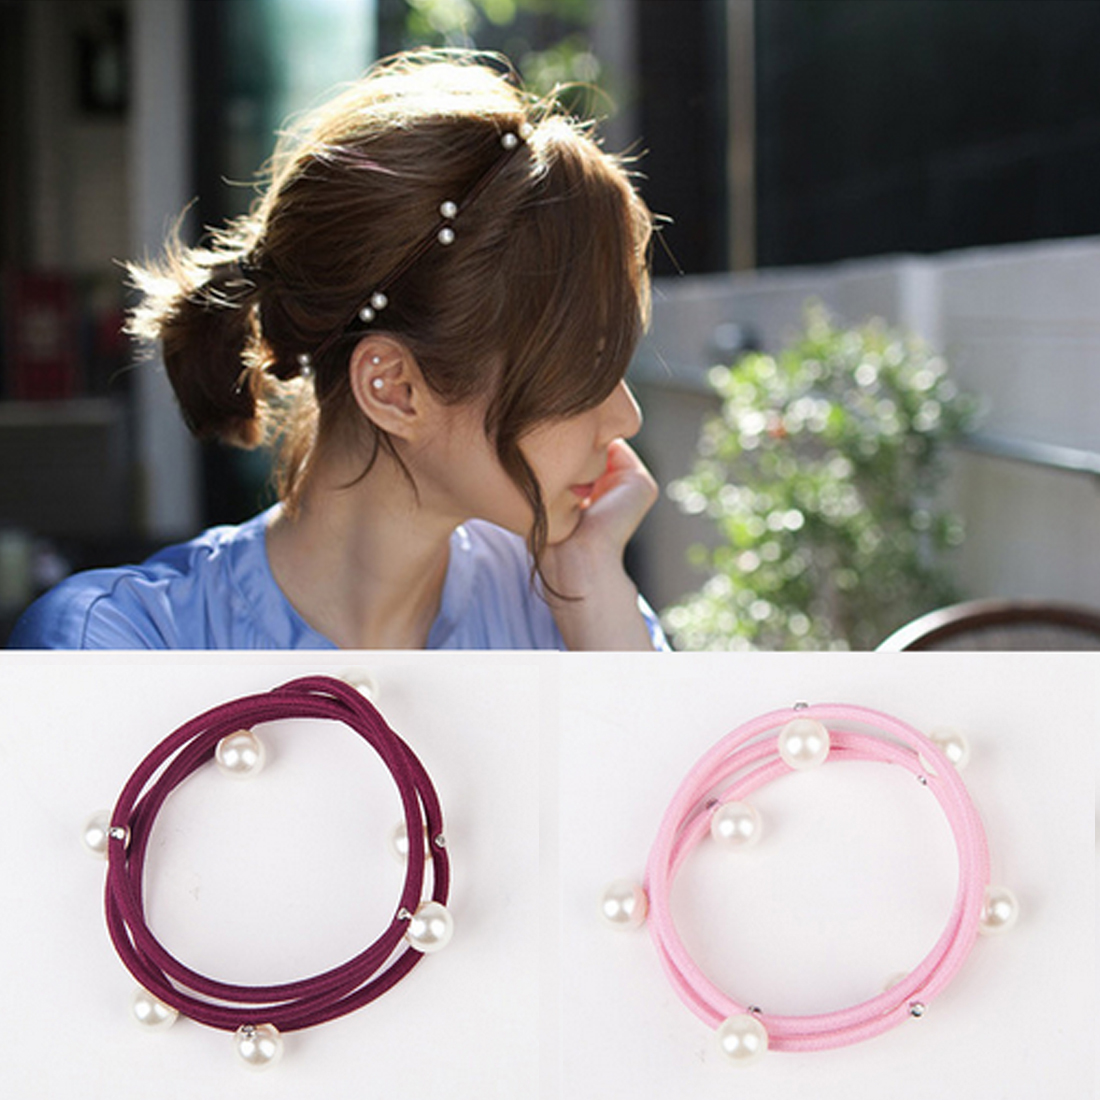 5PCS/Lot Simple Elegant Pearls Women Hair Bands Ornament Elastic Rubber Ropes Ponytail Holder Accessories